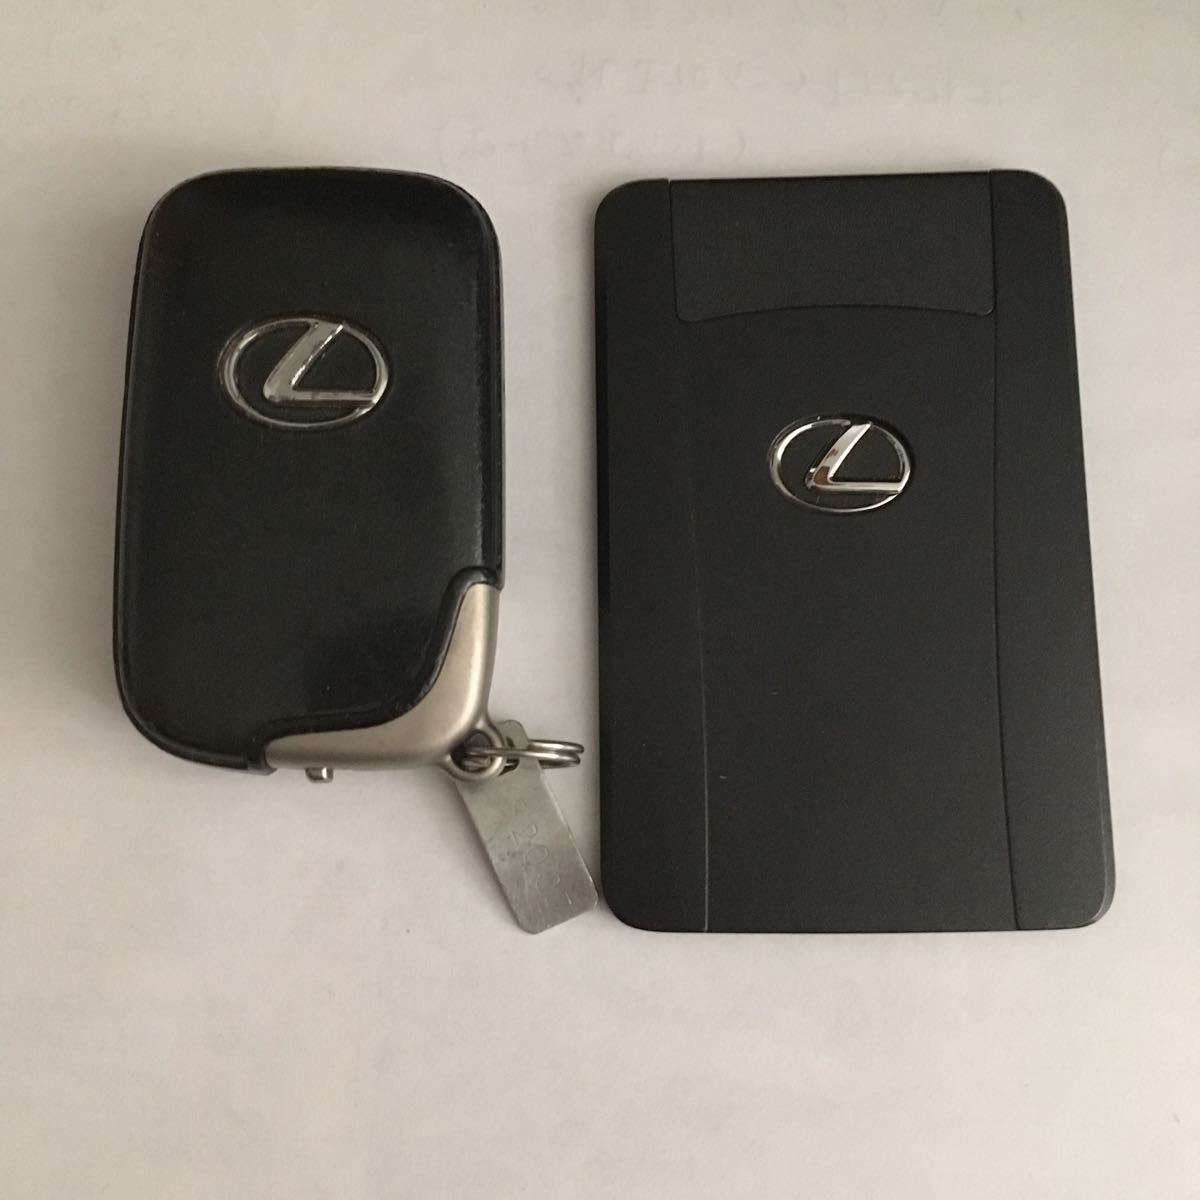 LEXUS純正スマートキー カードキー レクサスIS250 IS350 GSE21 GSE25 GSE20 271451-5360 R001YUA1019_画像1